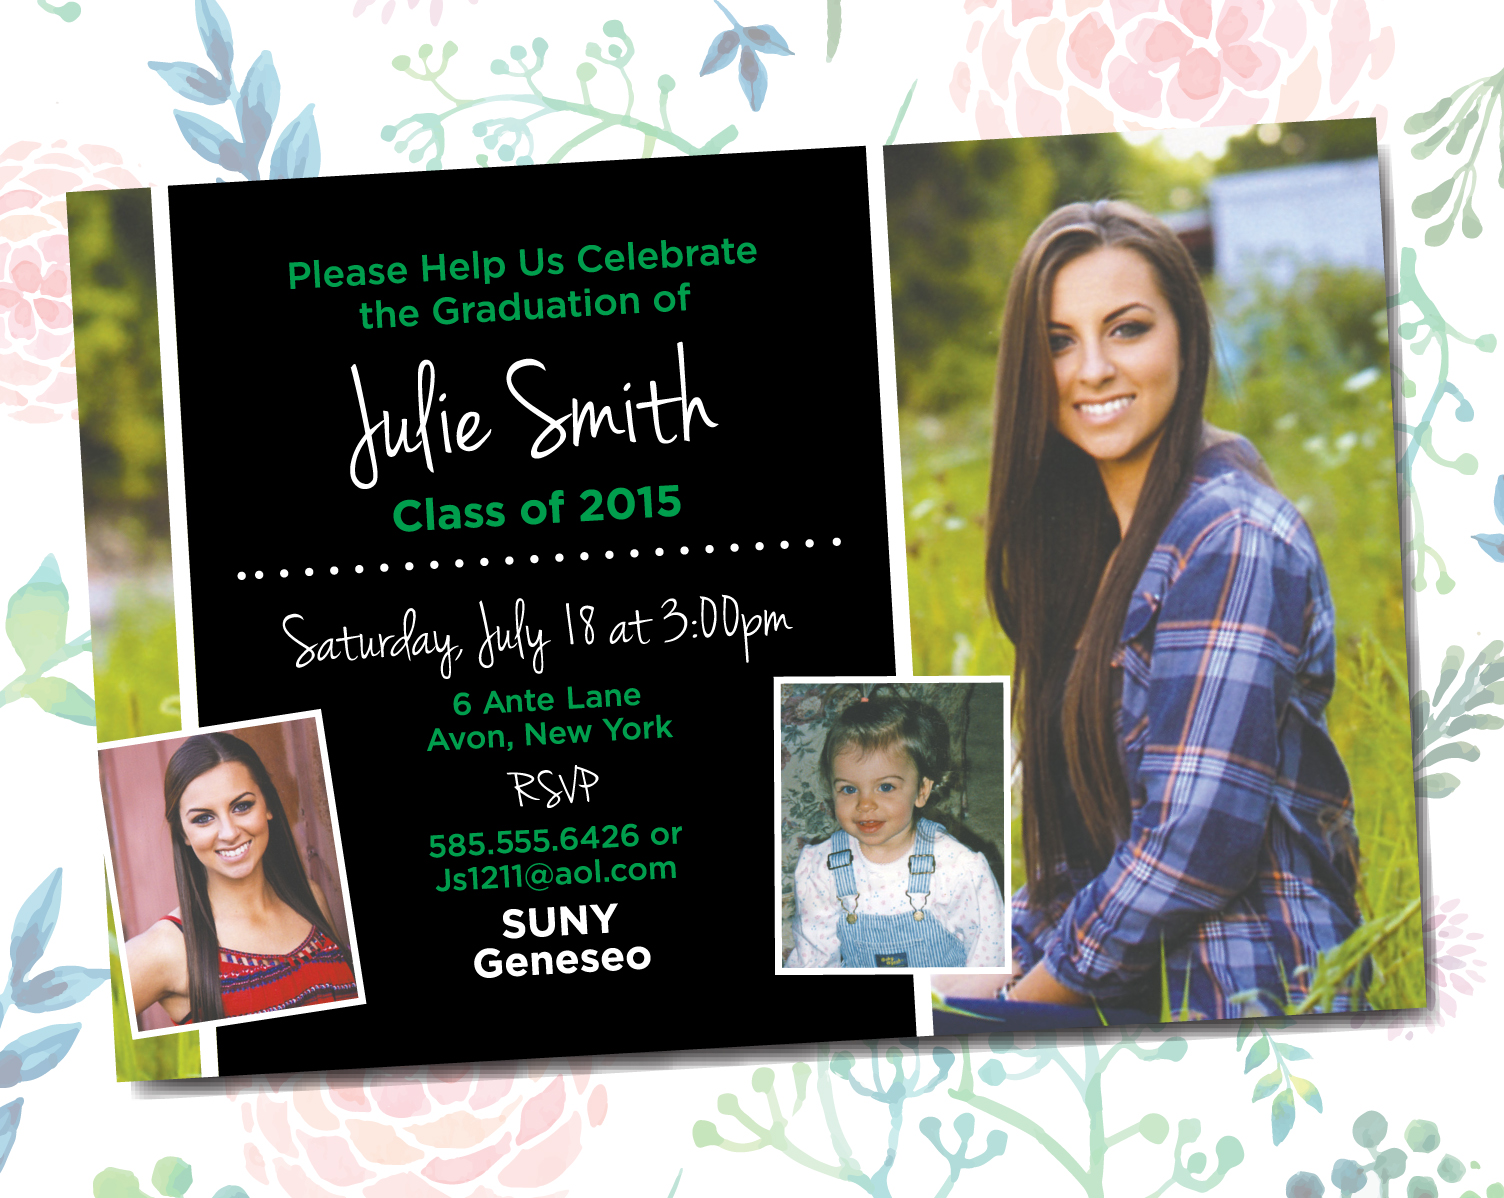 SENIOR GRAD PARTY INVITATIONS PRINTING by Penny Lane